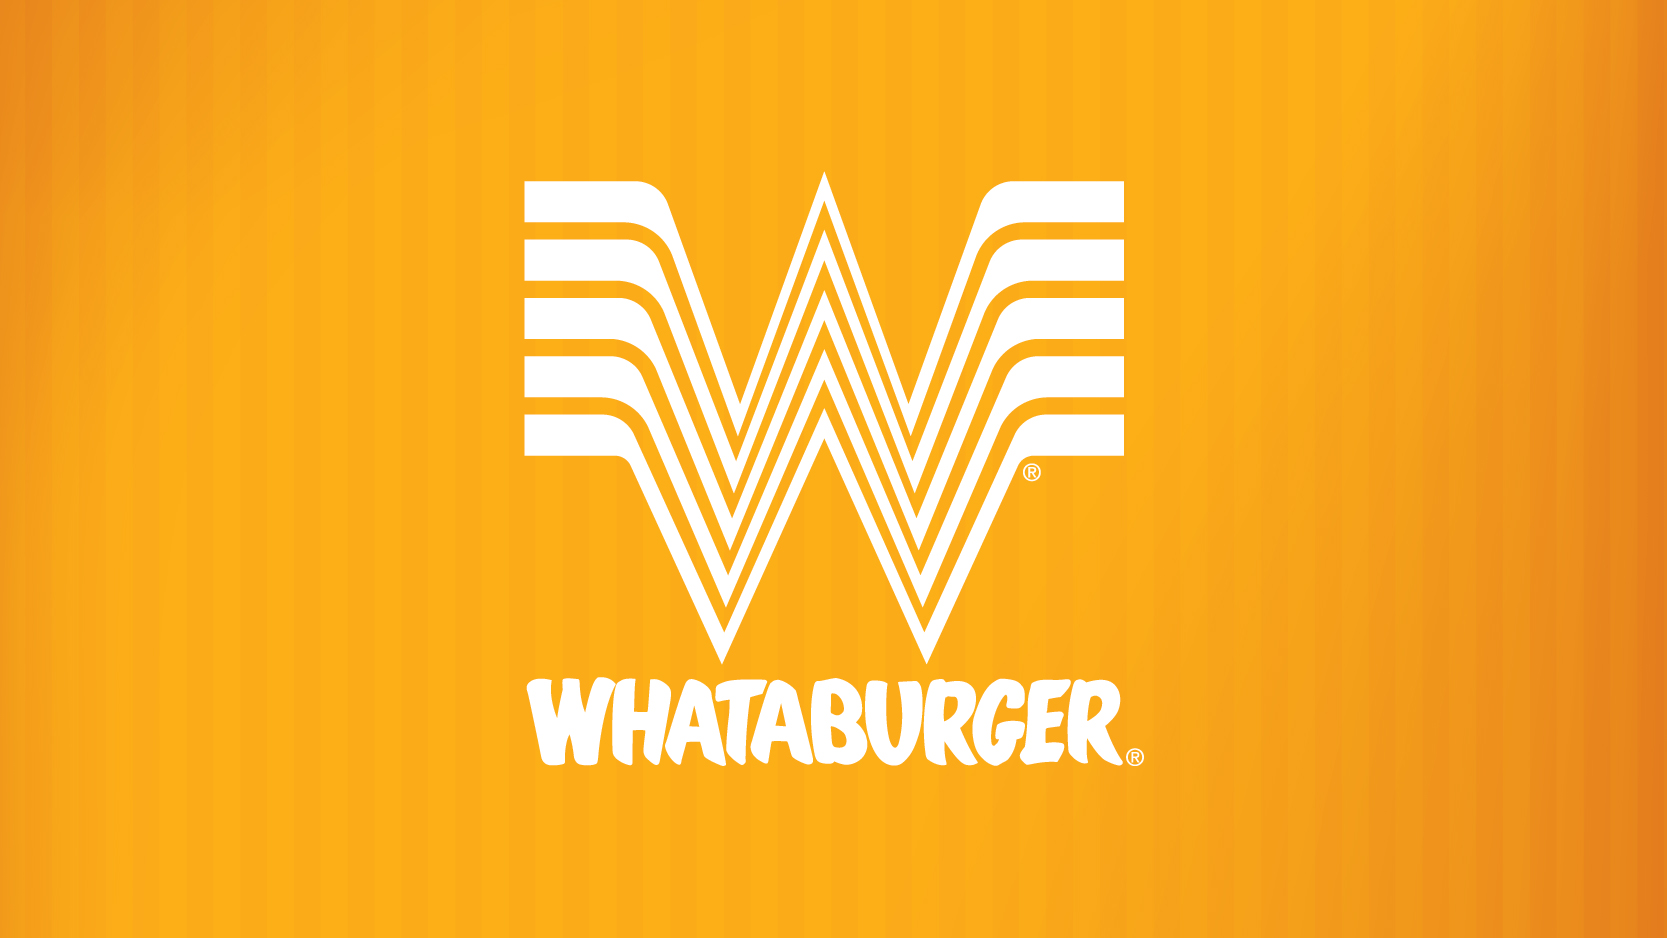 24 Whataburger Restaurants Advance To Finals In National